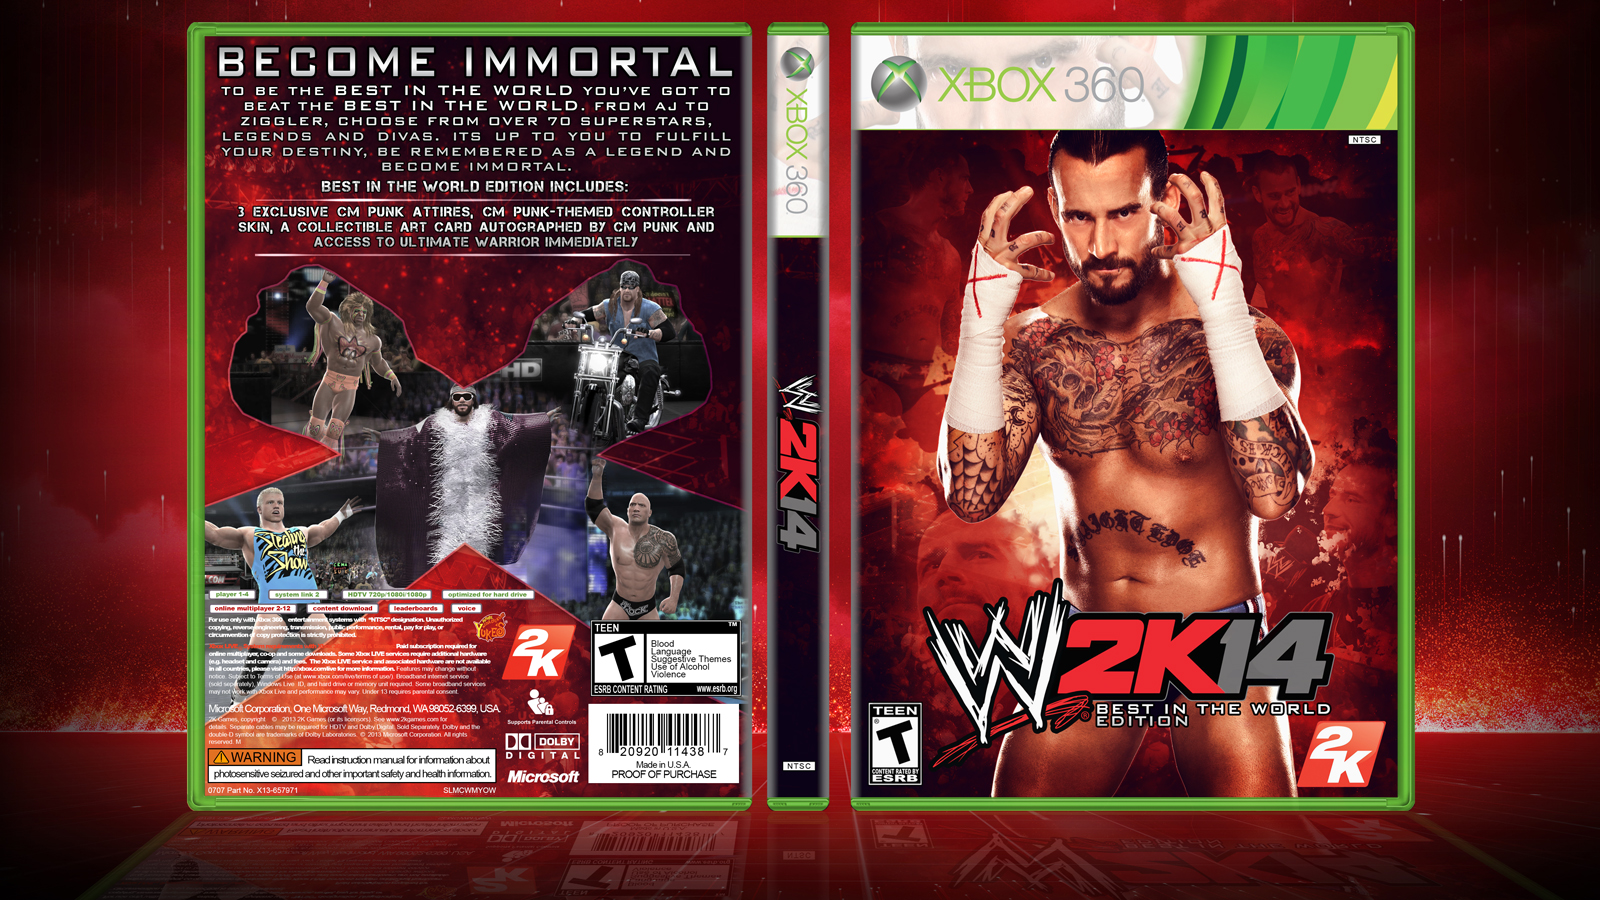 WWE 2K14 Cover - Best in the World Edition